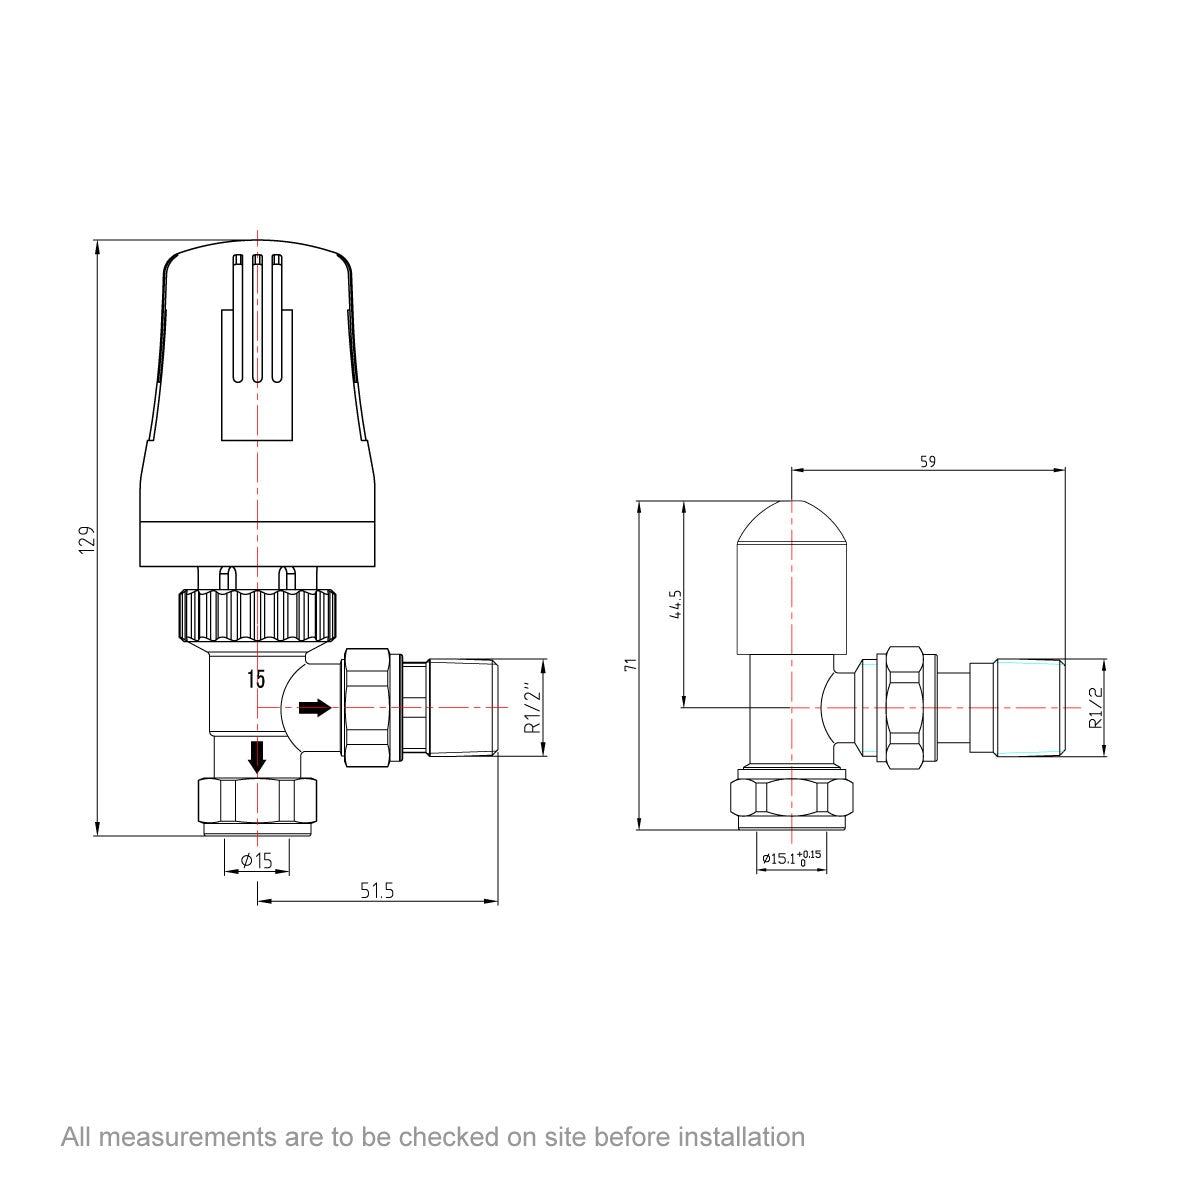 Dimensions for Orchard Thermostatic white angled radiator valves